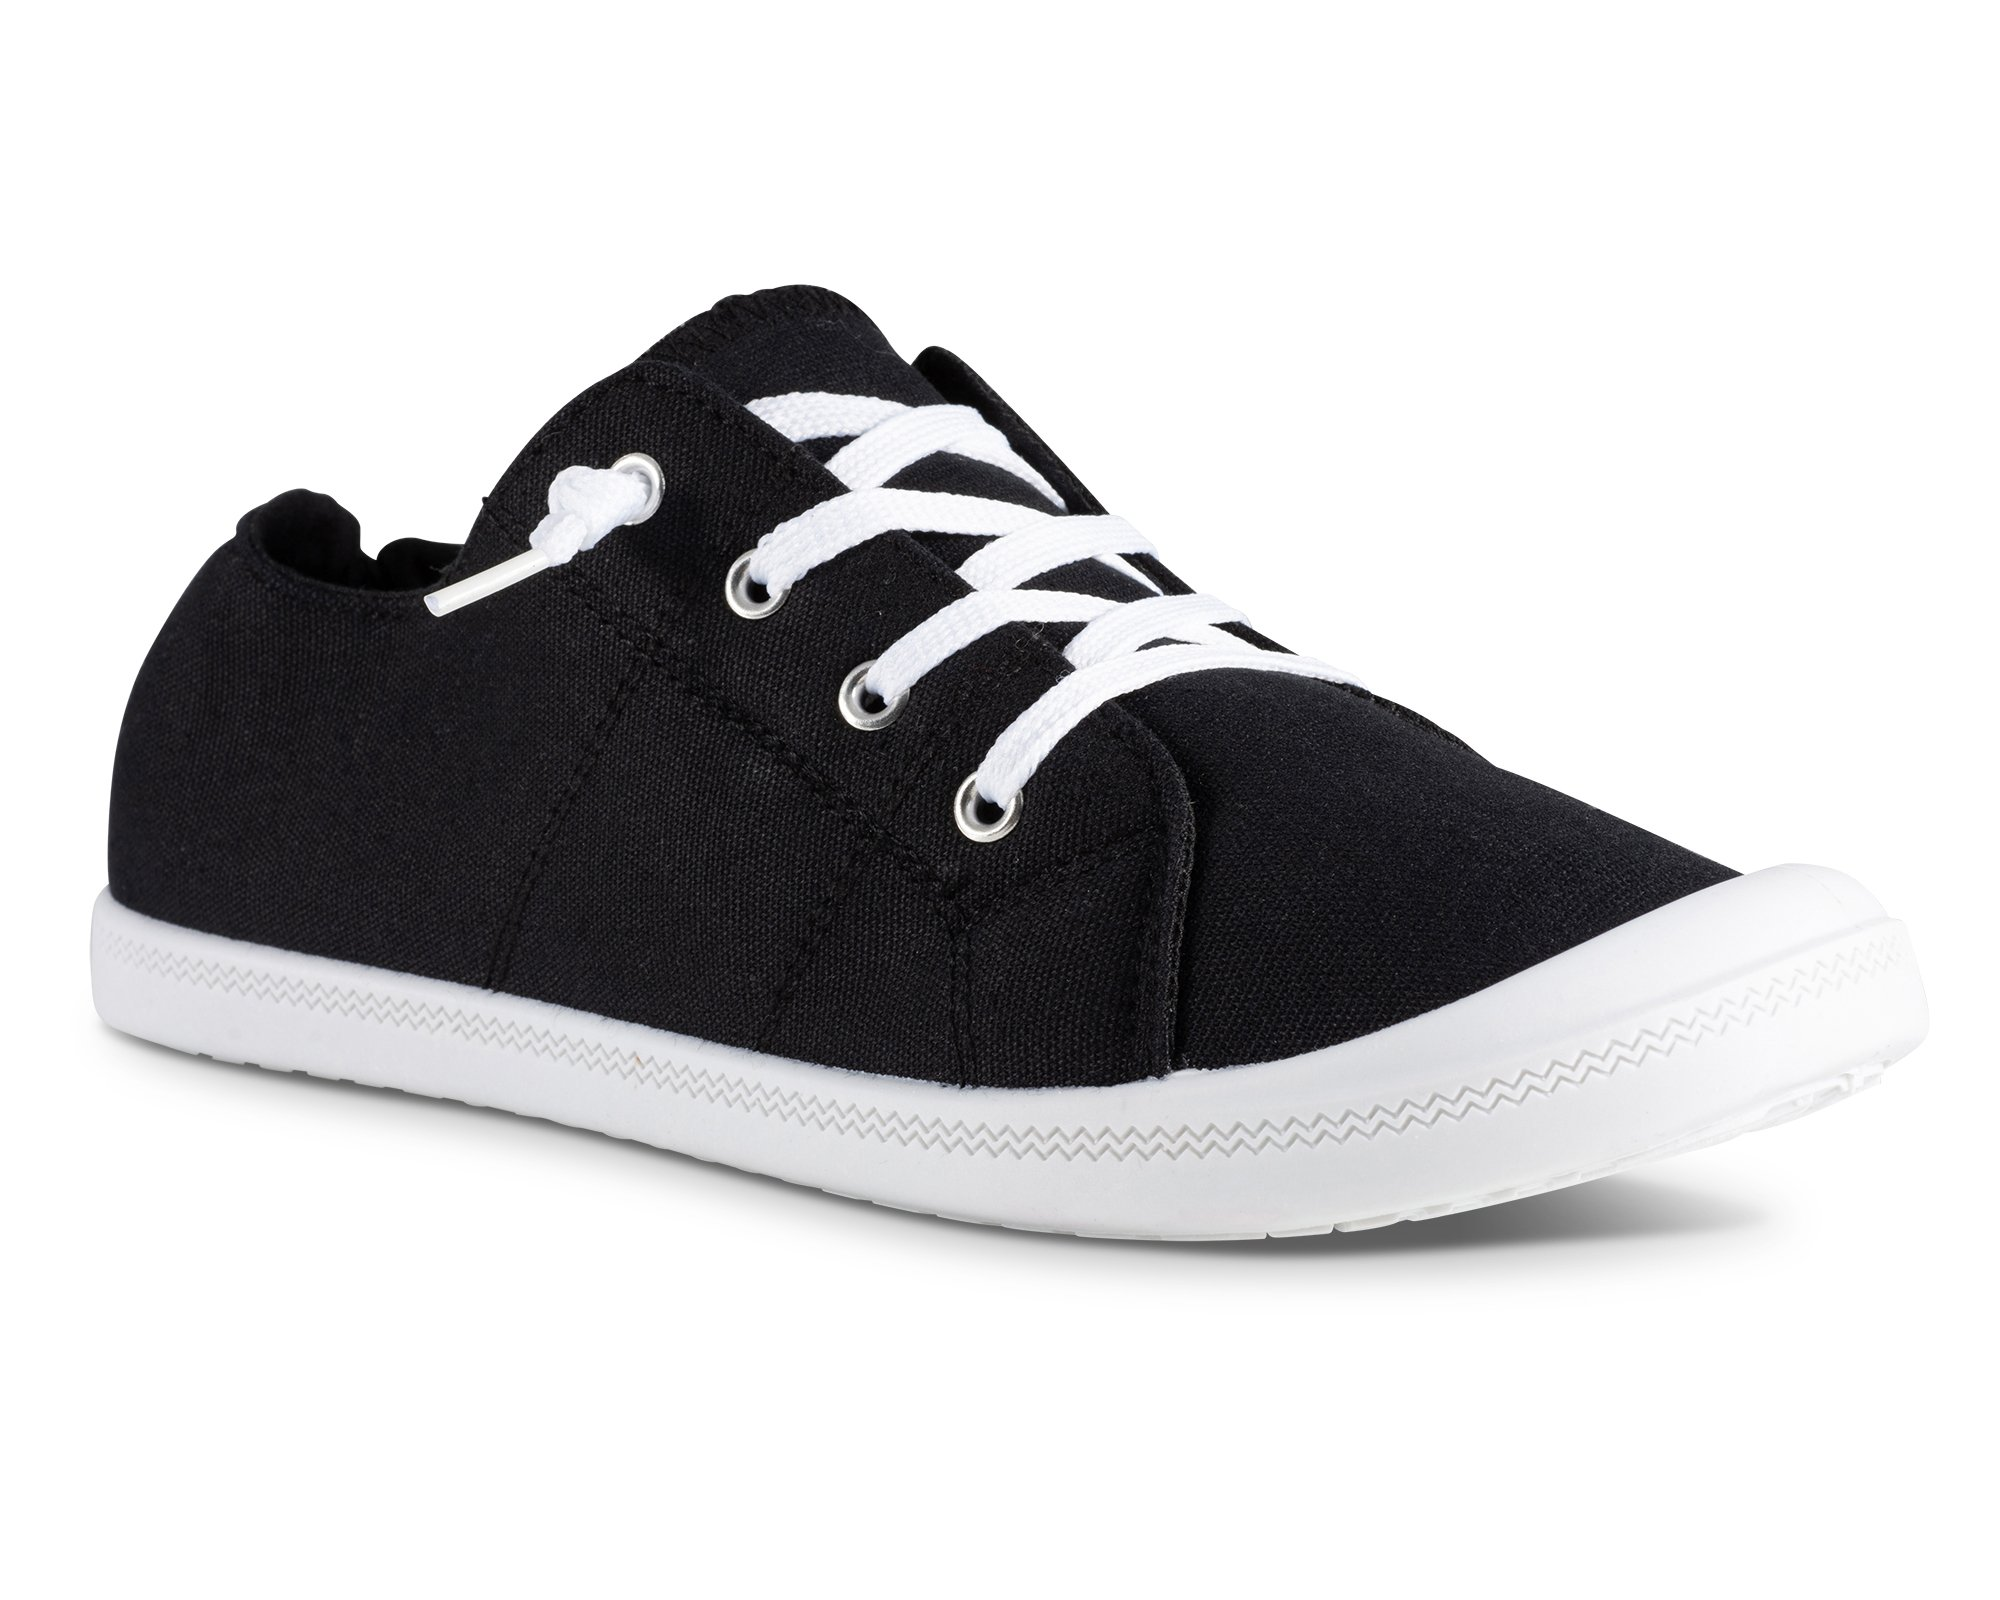 Twisted Womens Andrea Slip-On Canvas Sneakers - ANDREA05 Black, Size 9